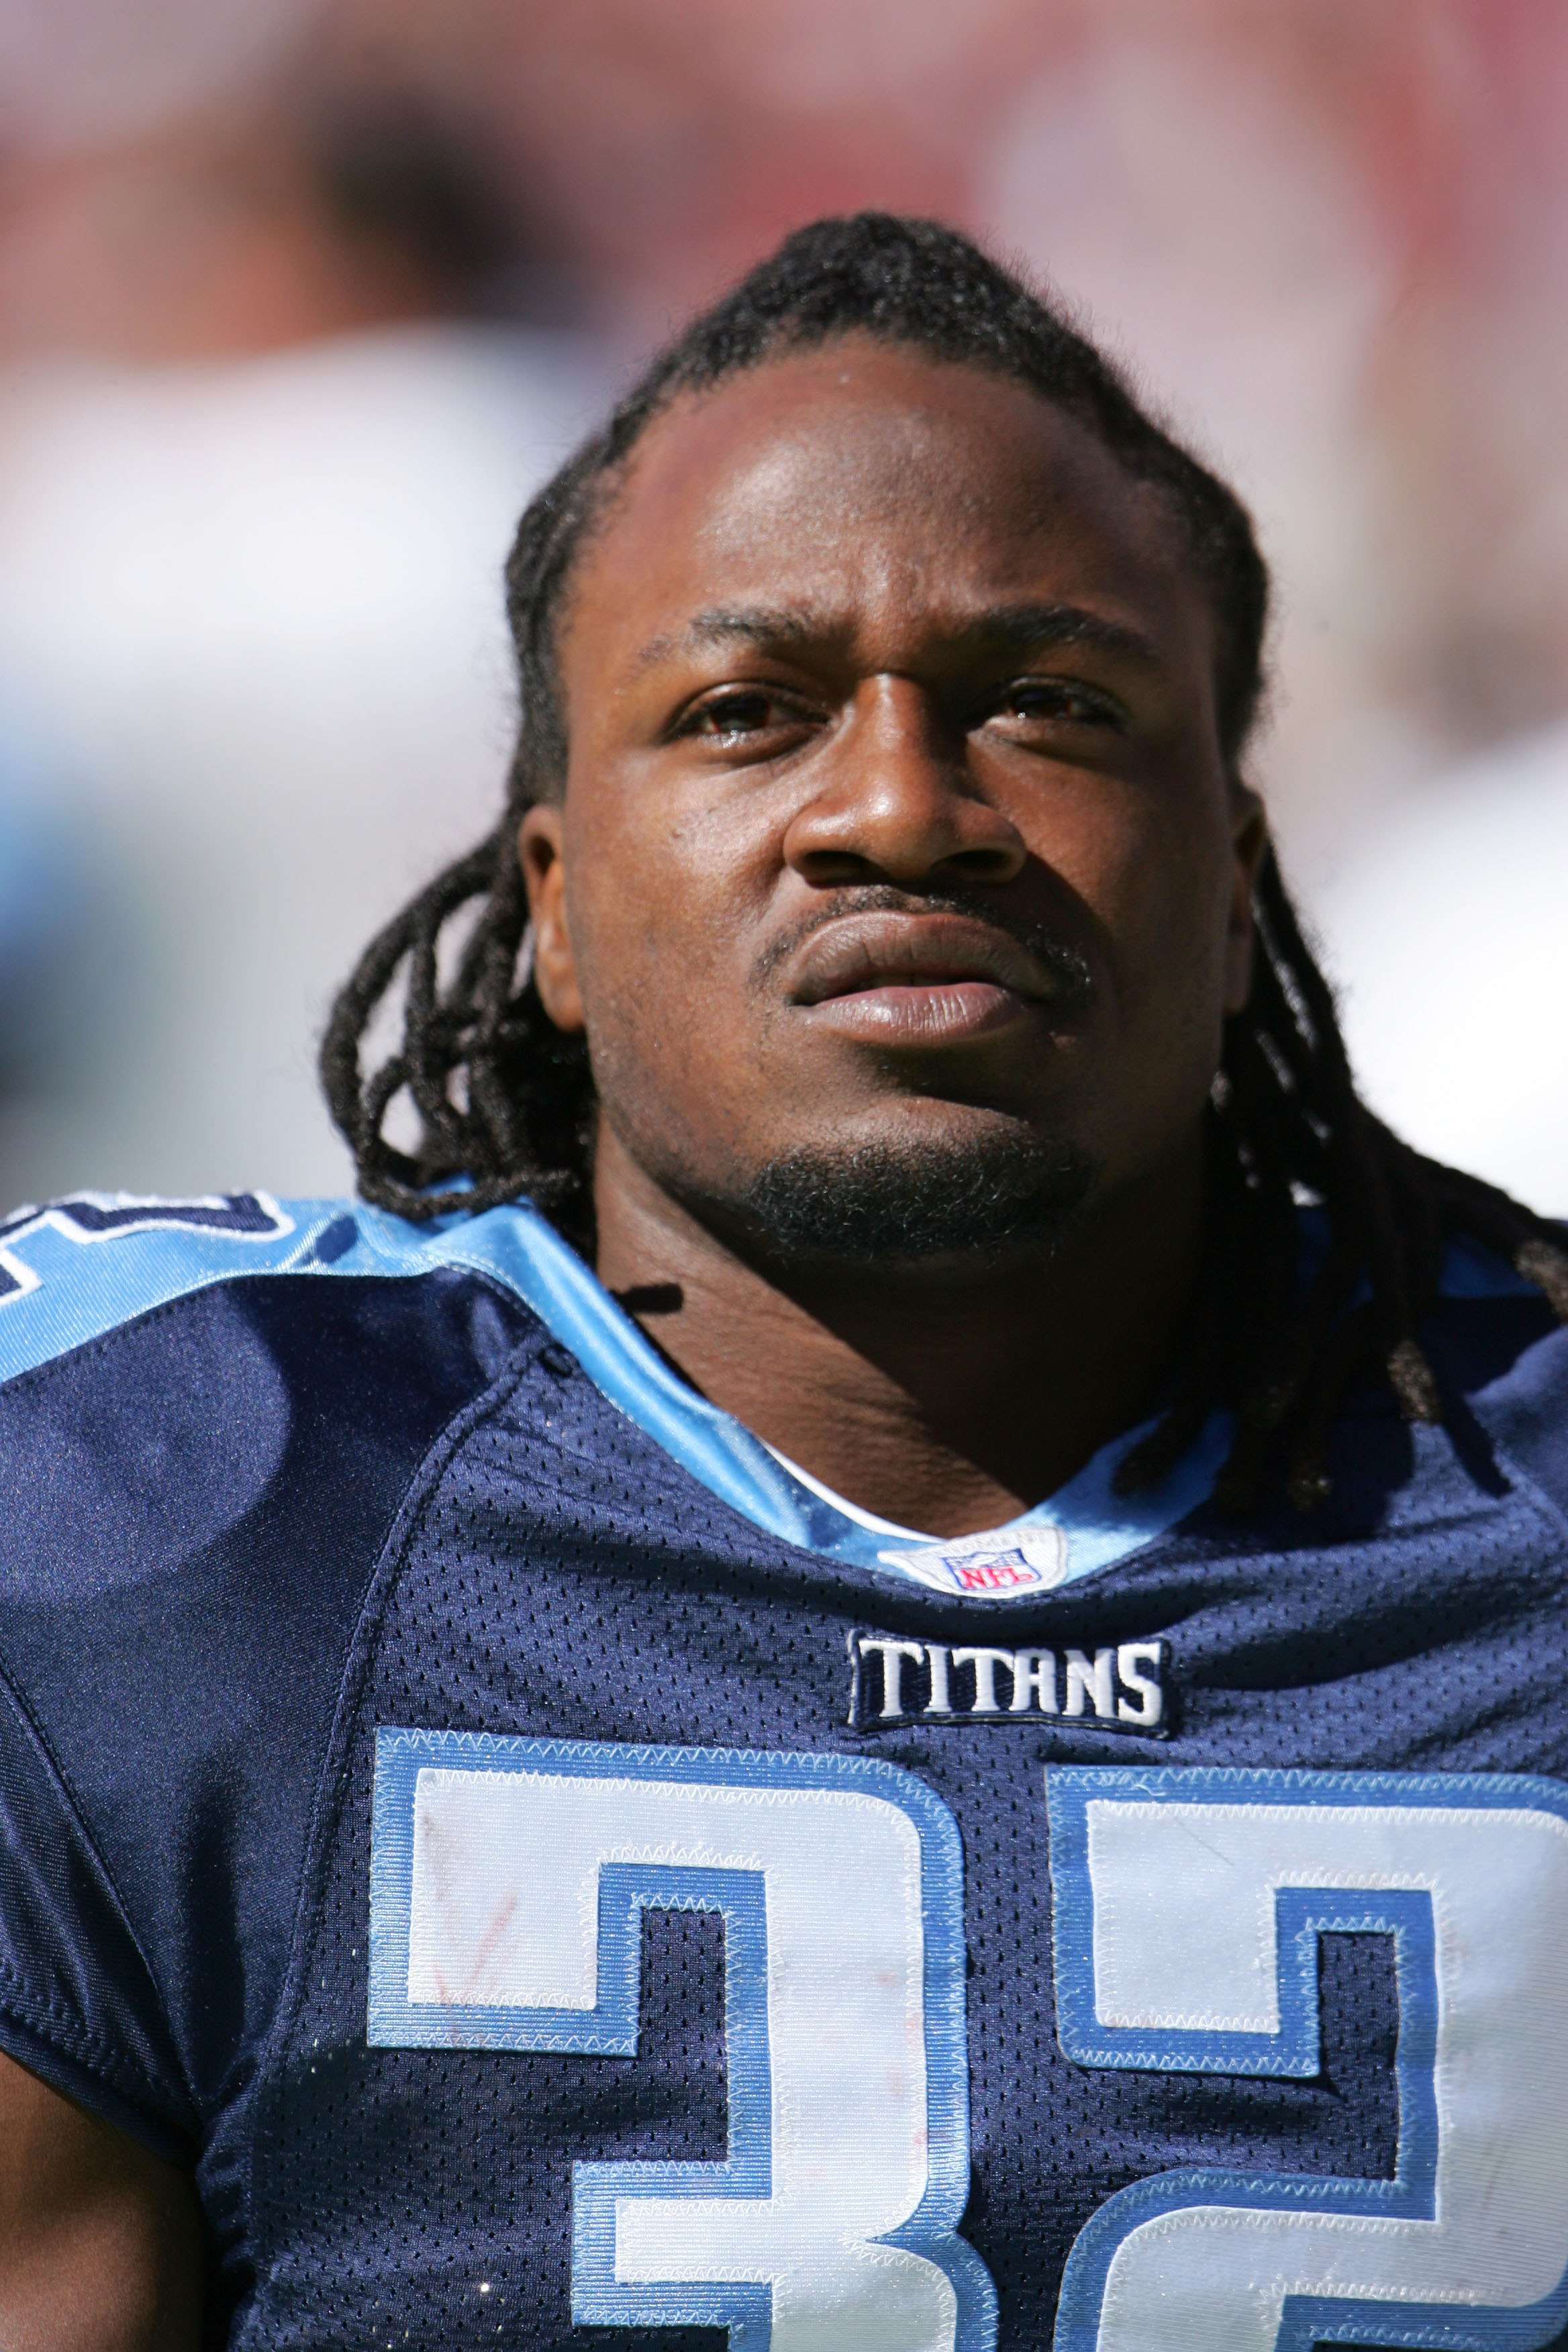 WASHINGTON ? OCTOBER 15:  Cornerback Pacman Jones #32 of the Tennessee Titans watches the game against the Washington Redskins on October 15, 2006 at FedExField in Landover, Maryland. The Titans won 25-22.  (Photo by Chris McGrath/Getty Images)